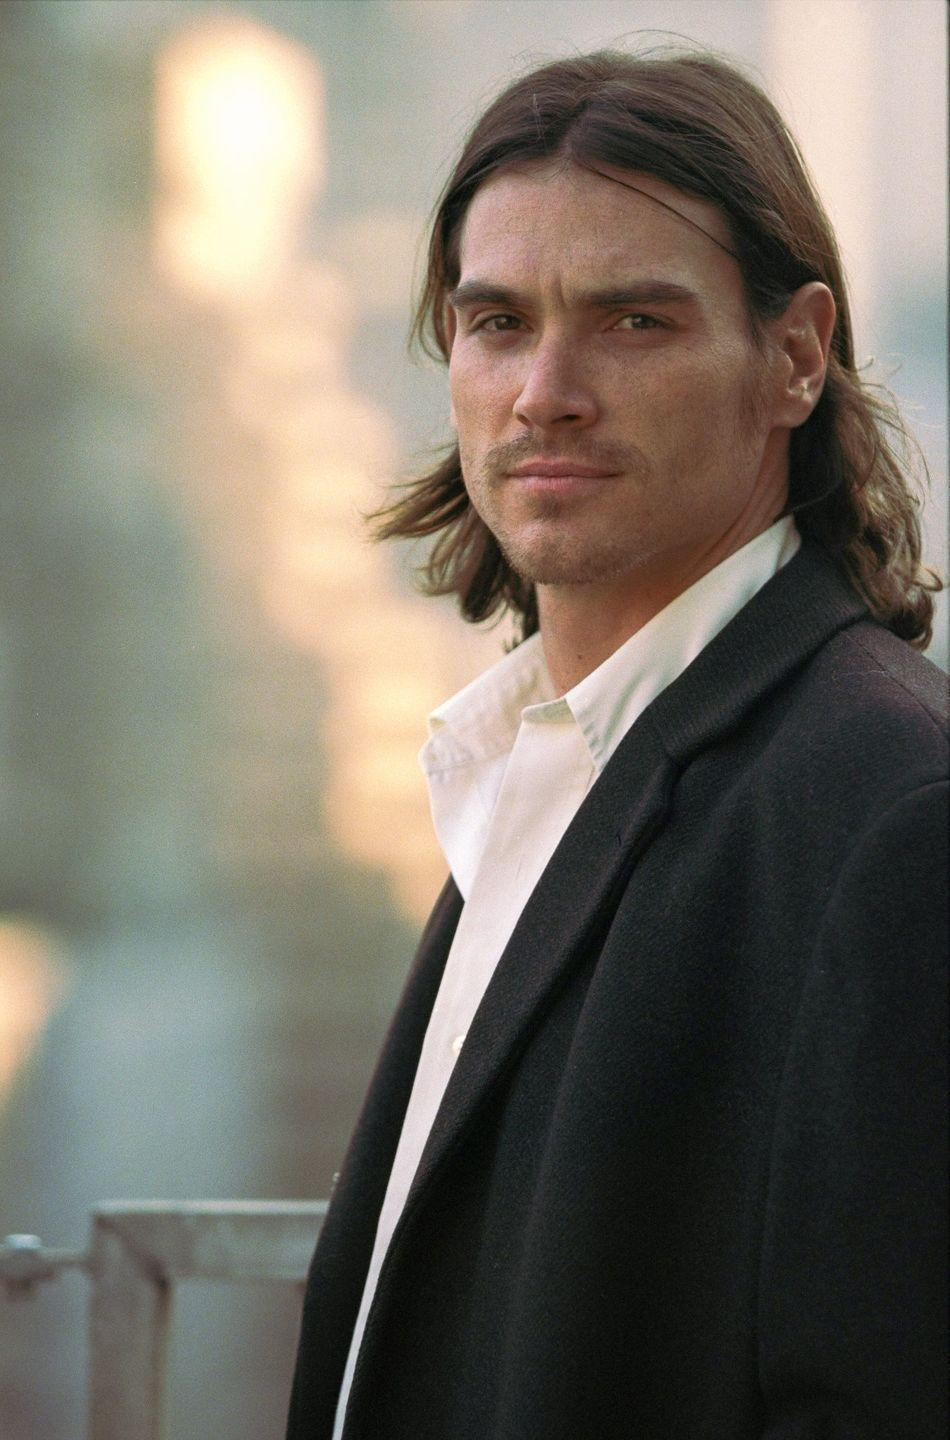 <p>Although Billy Crudup normally wears his hair in a short cut, when the actor grew his hair out for his role in <em>Almost Famous, </em>it turned out to be a flattering look. </p>